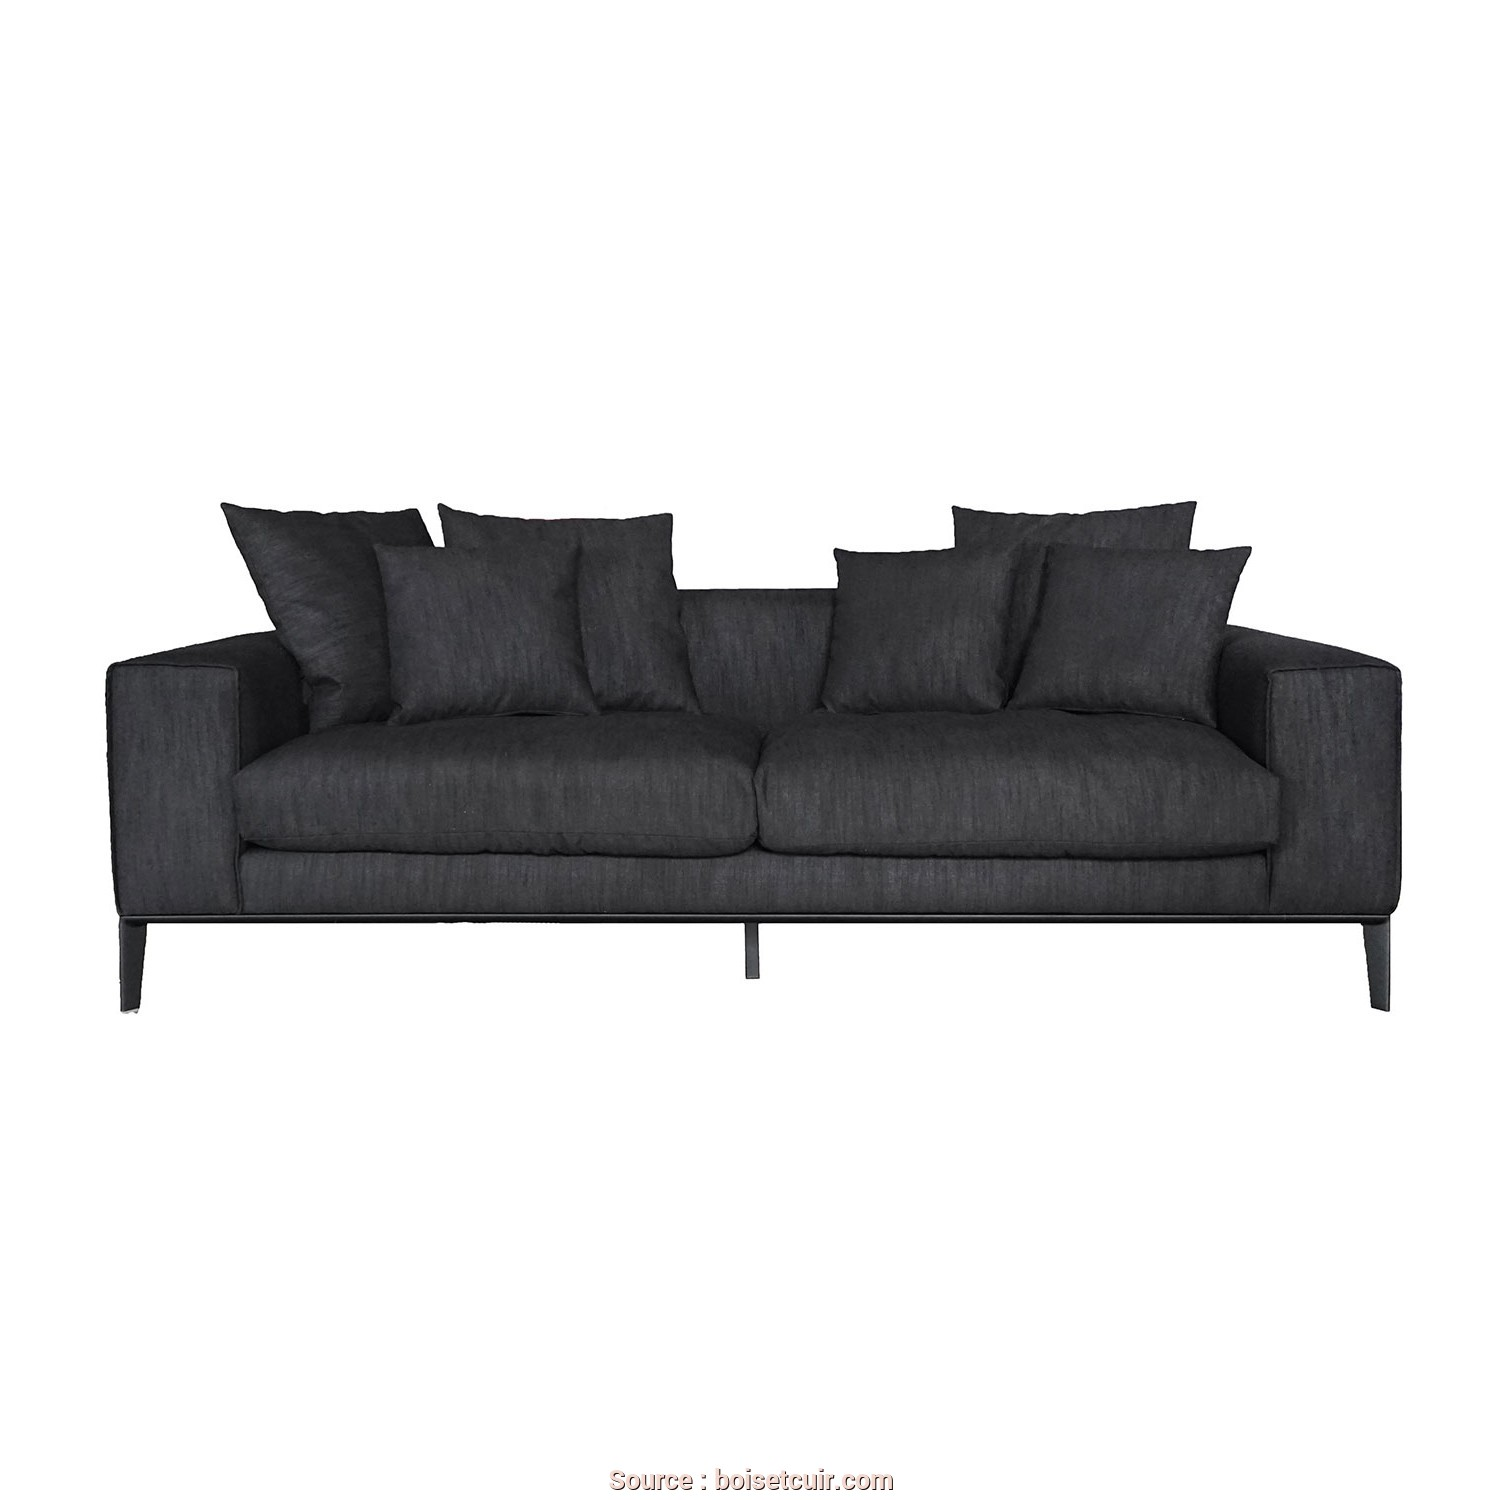 Bello 4 Divano 3 Seater Sofa Jake Vintage